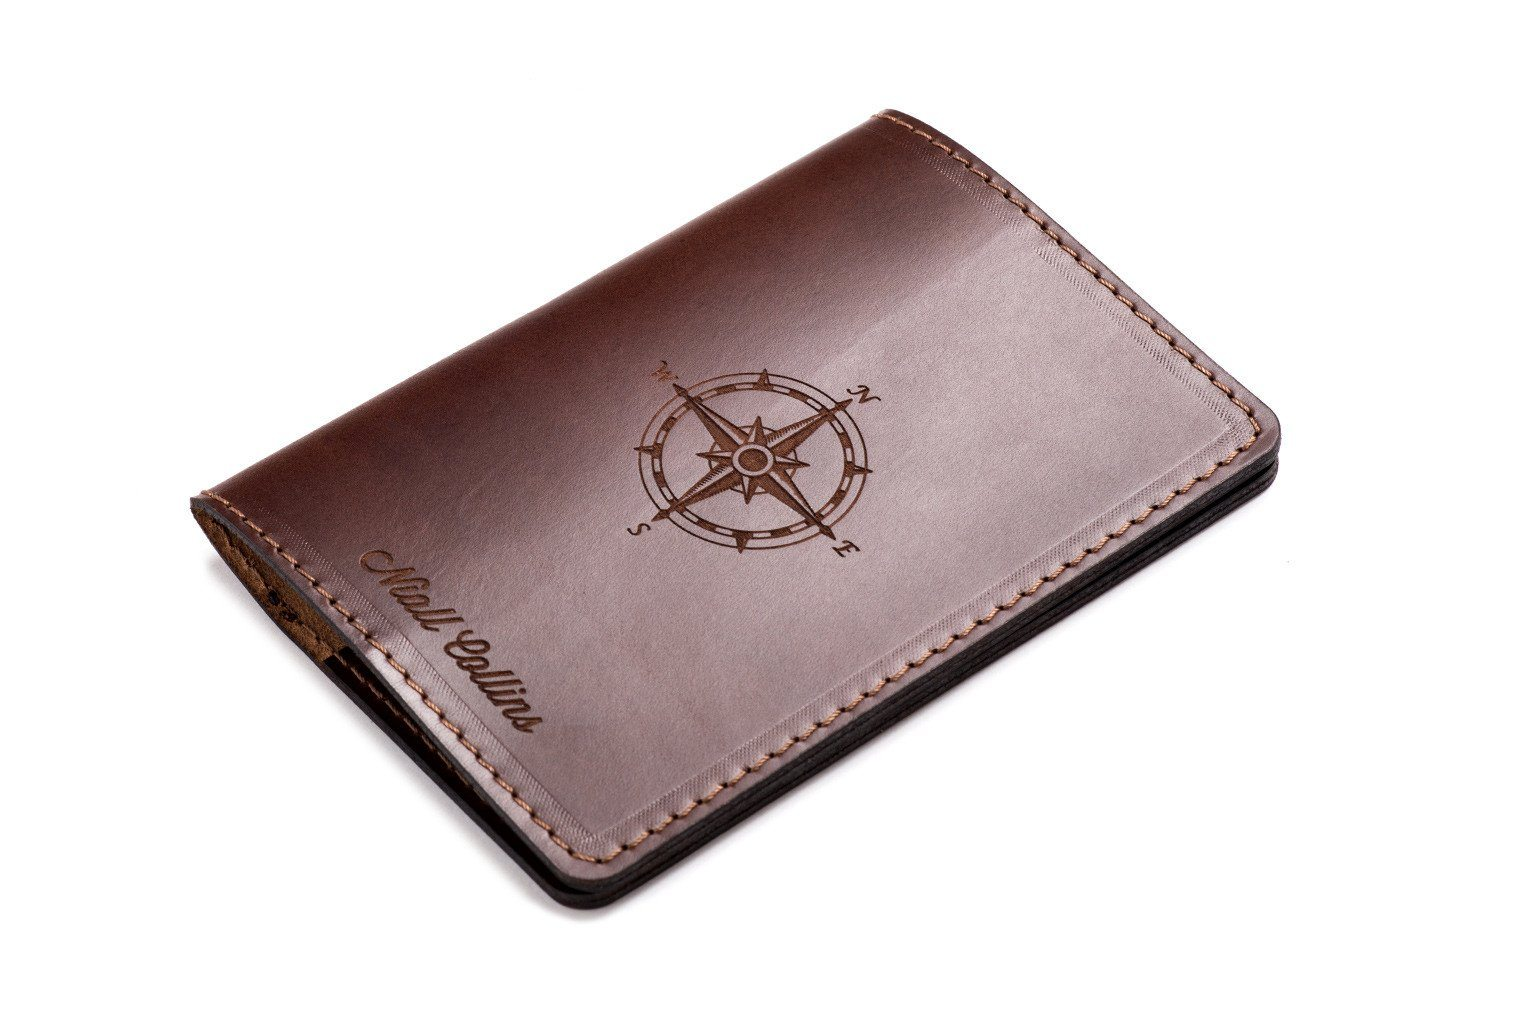 b8a51be417b1 Personalised Leather Passport Holder Dark Brown - CarveOn